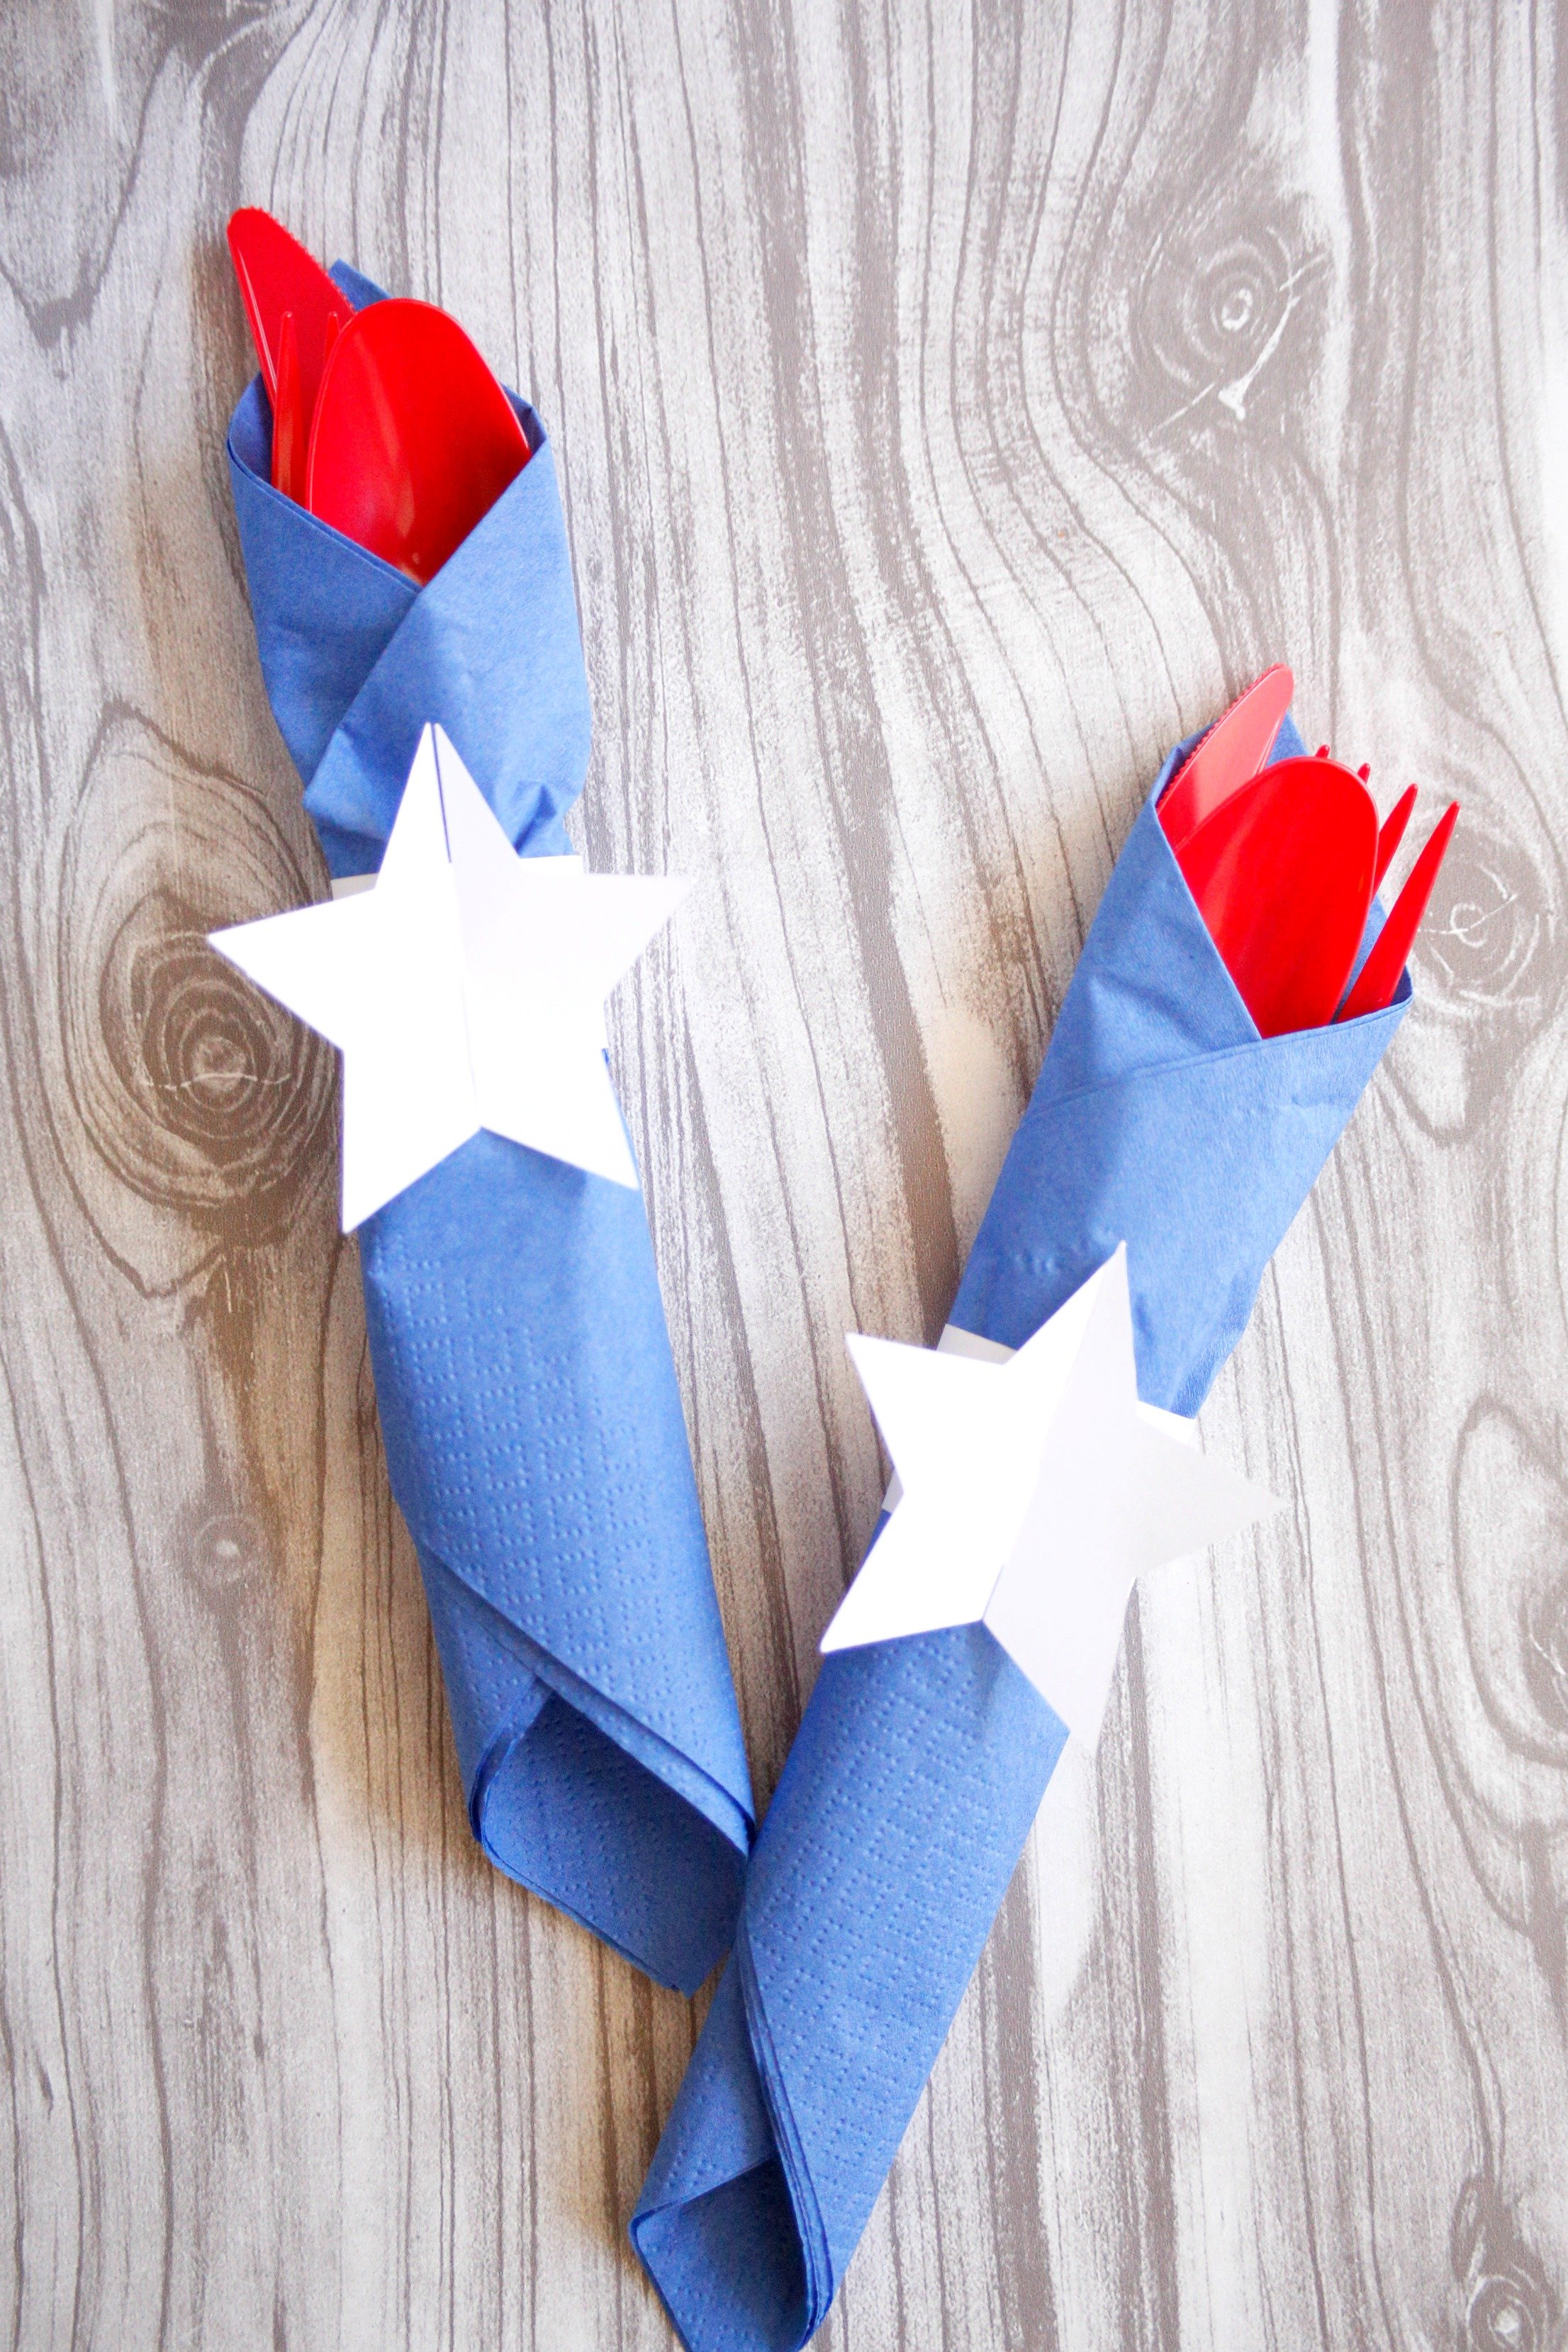 Add some more red and blue to your 4th of July party with these easy diy napkin rings.